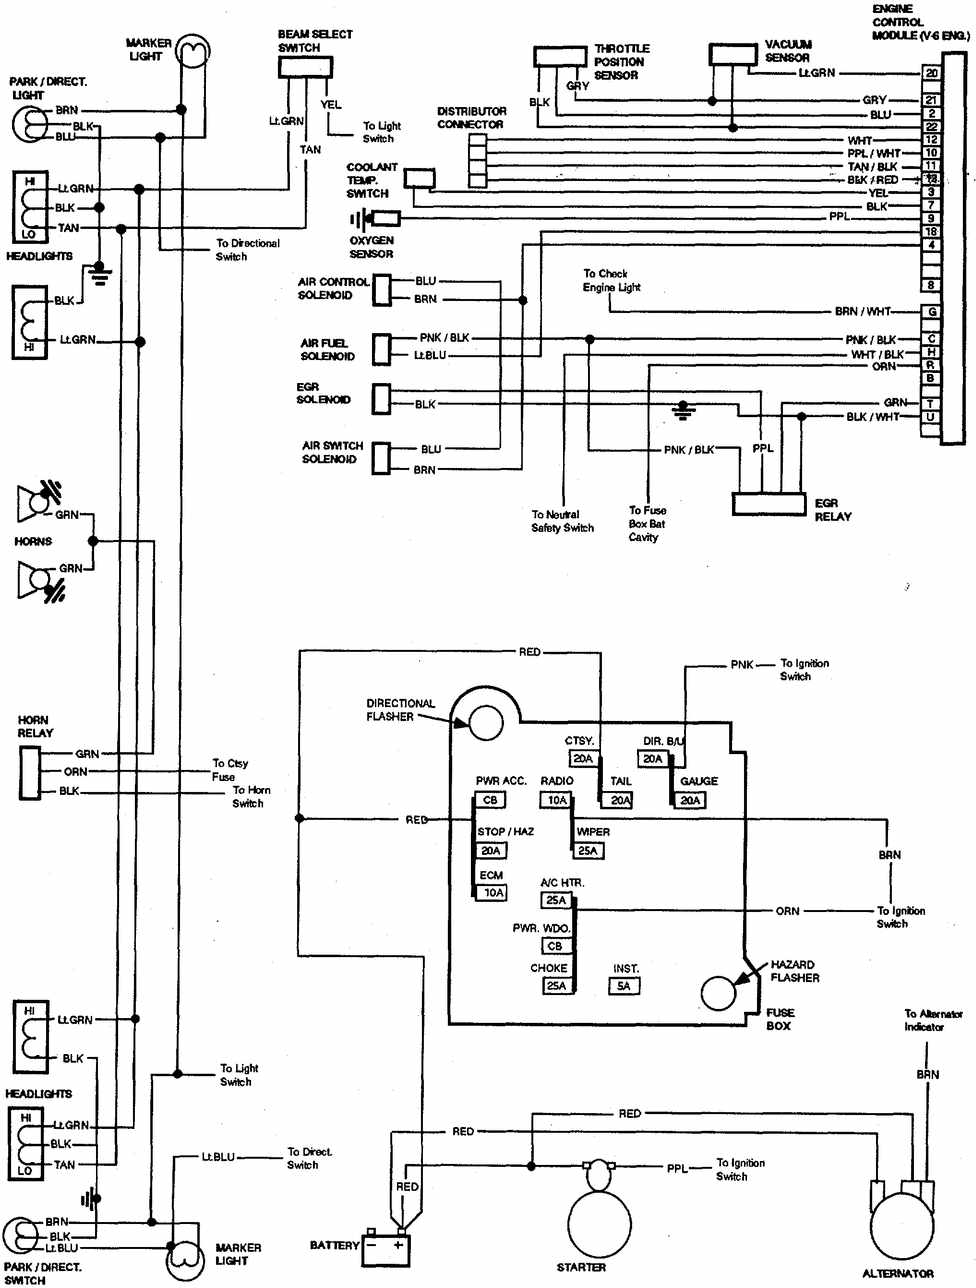 1977 chevy wiring diagram free picture schematic simple wiring schema 305 chevy wiring diagrams free 75 [ 976 x 1288 Pixel ]